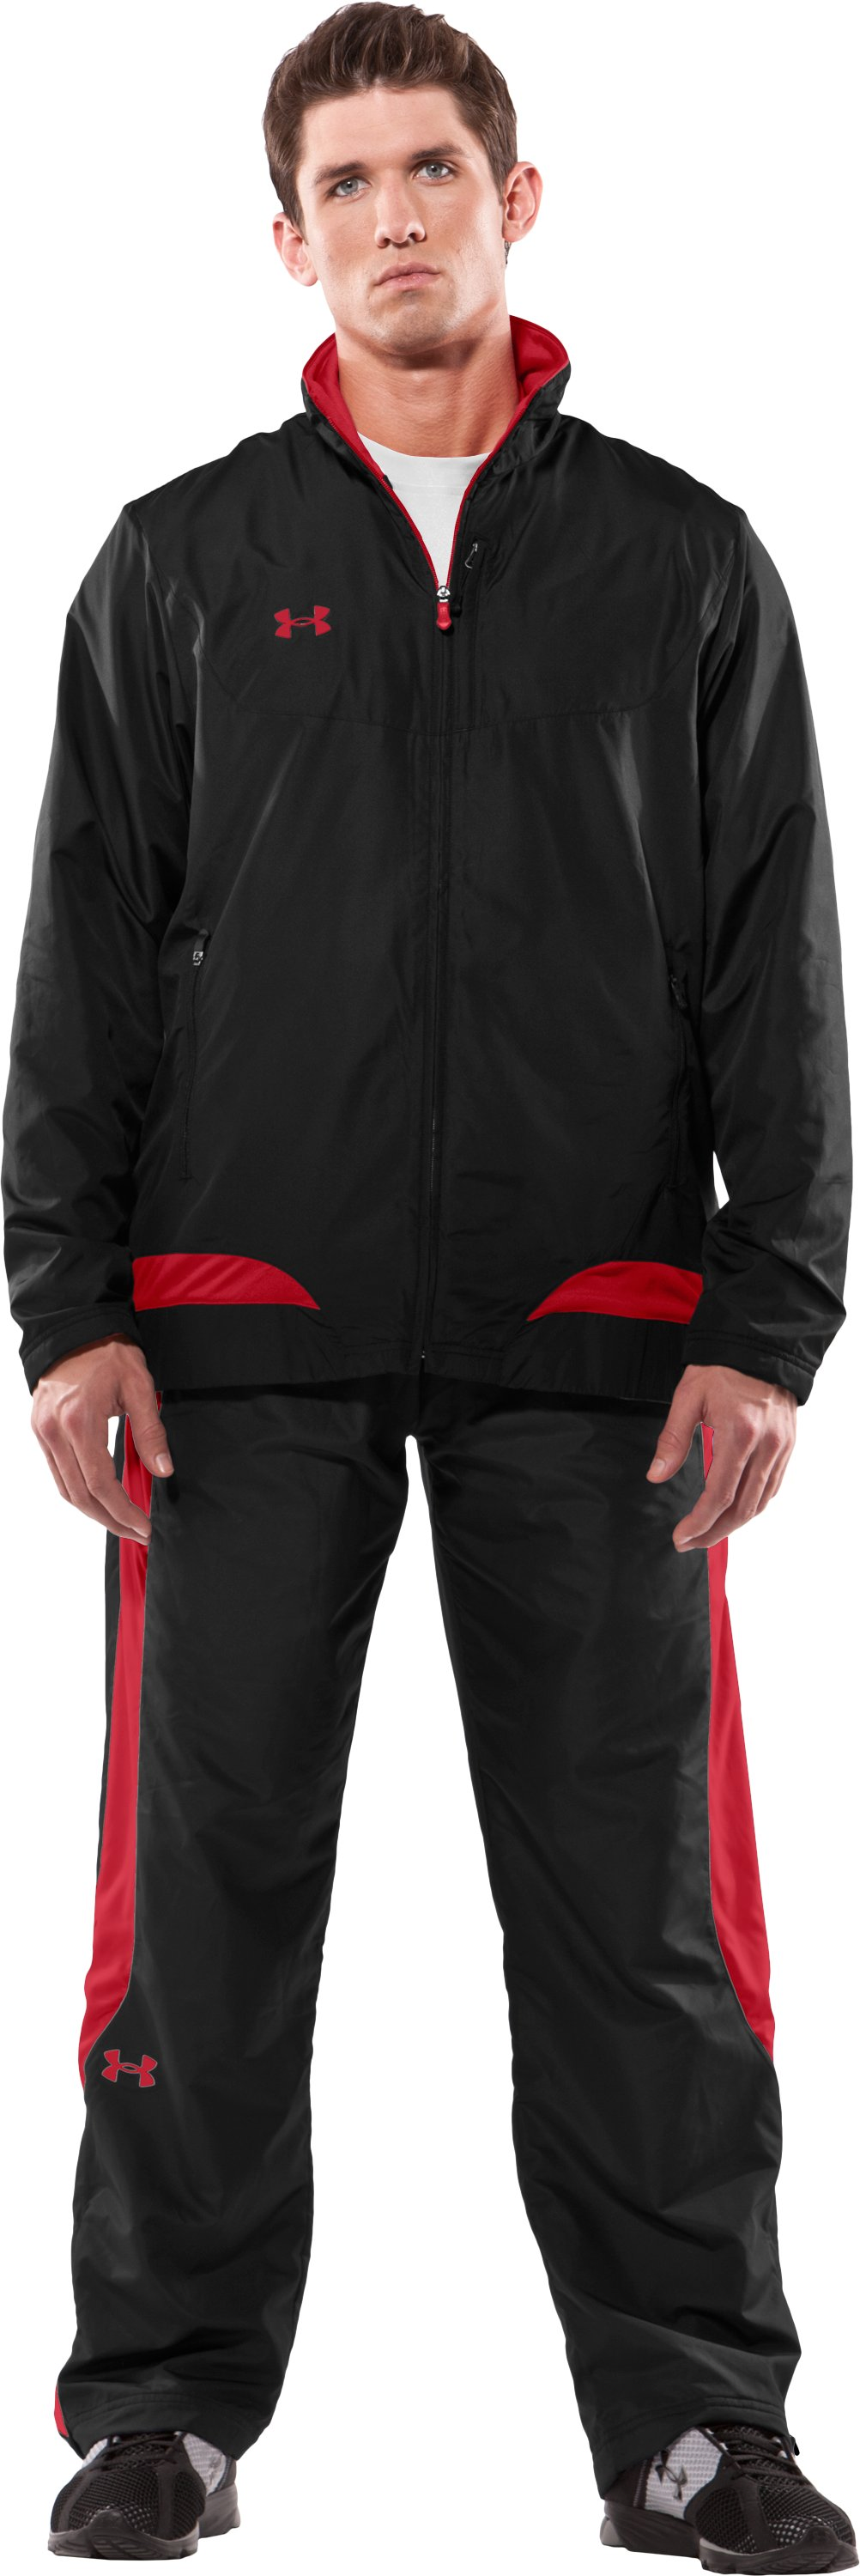 Men's Canuck Hockey Warm-Up Jacket, Black